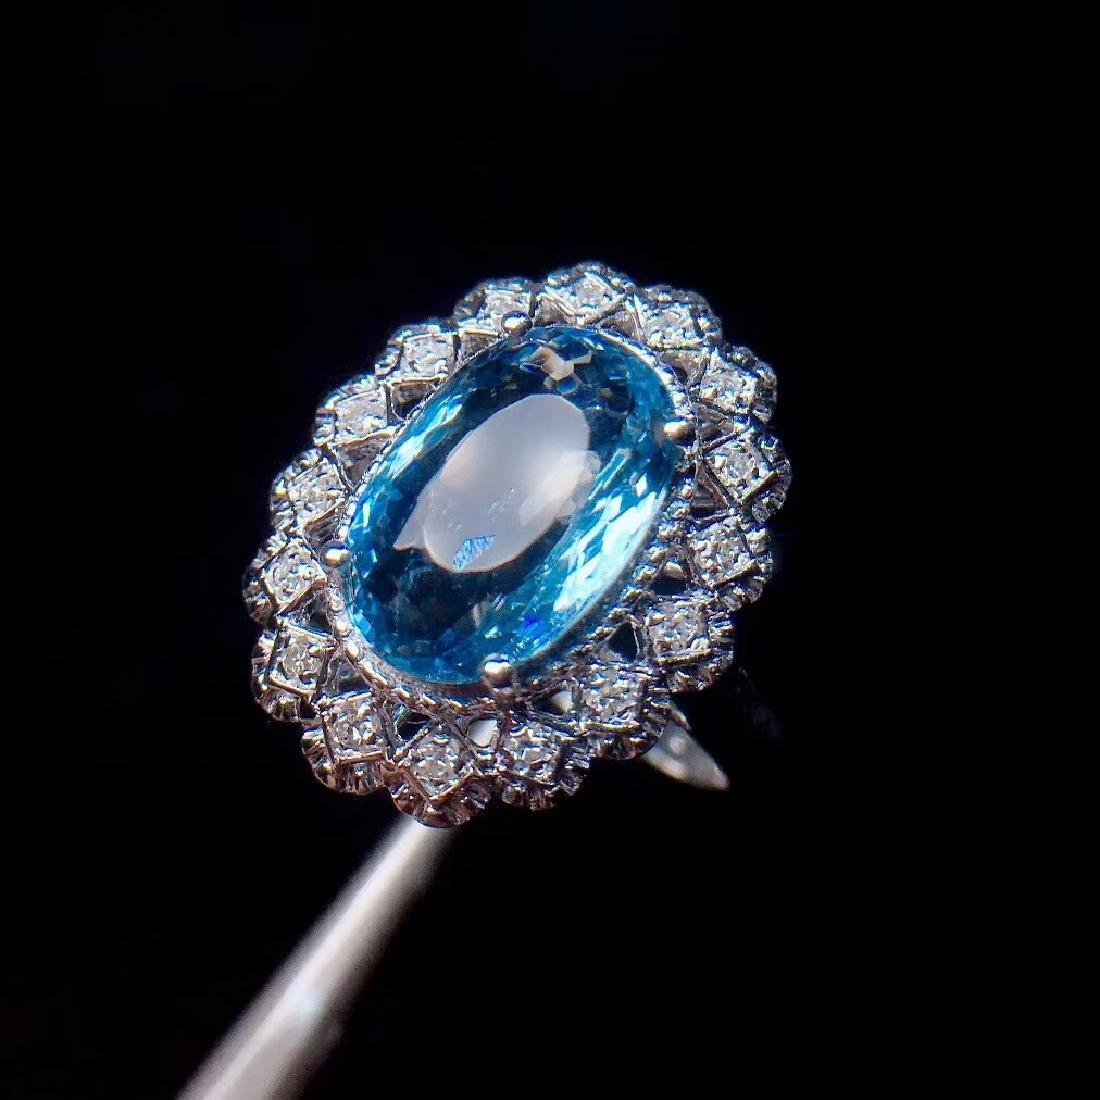 4ct Aquamarine Ring in 18kt White Gold - 3